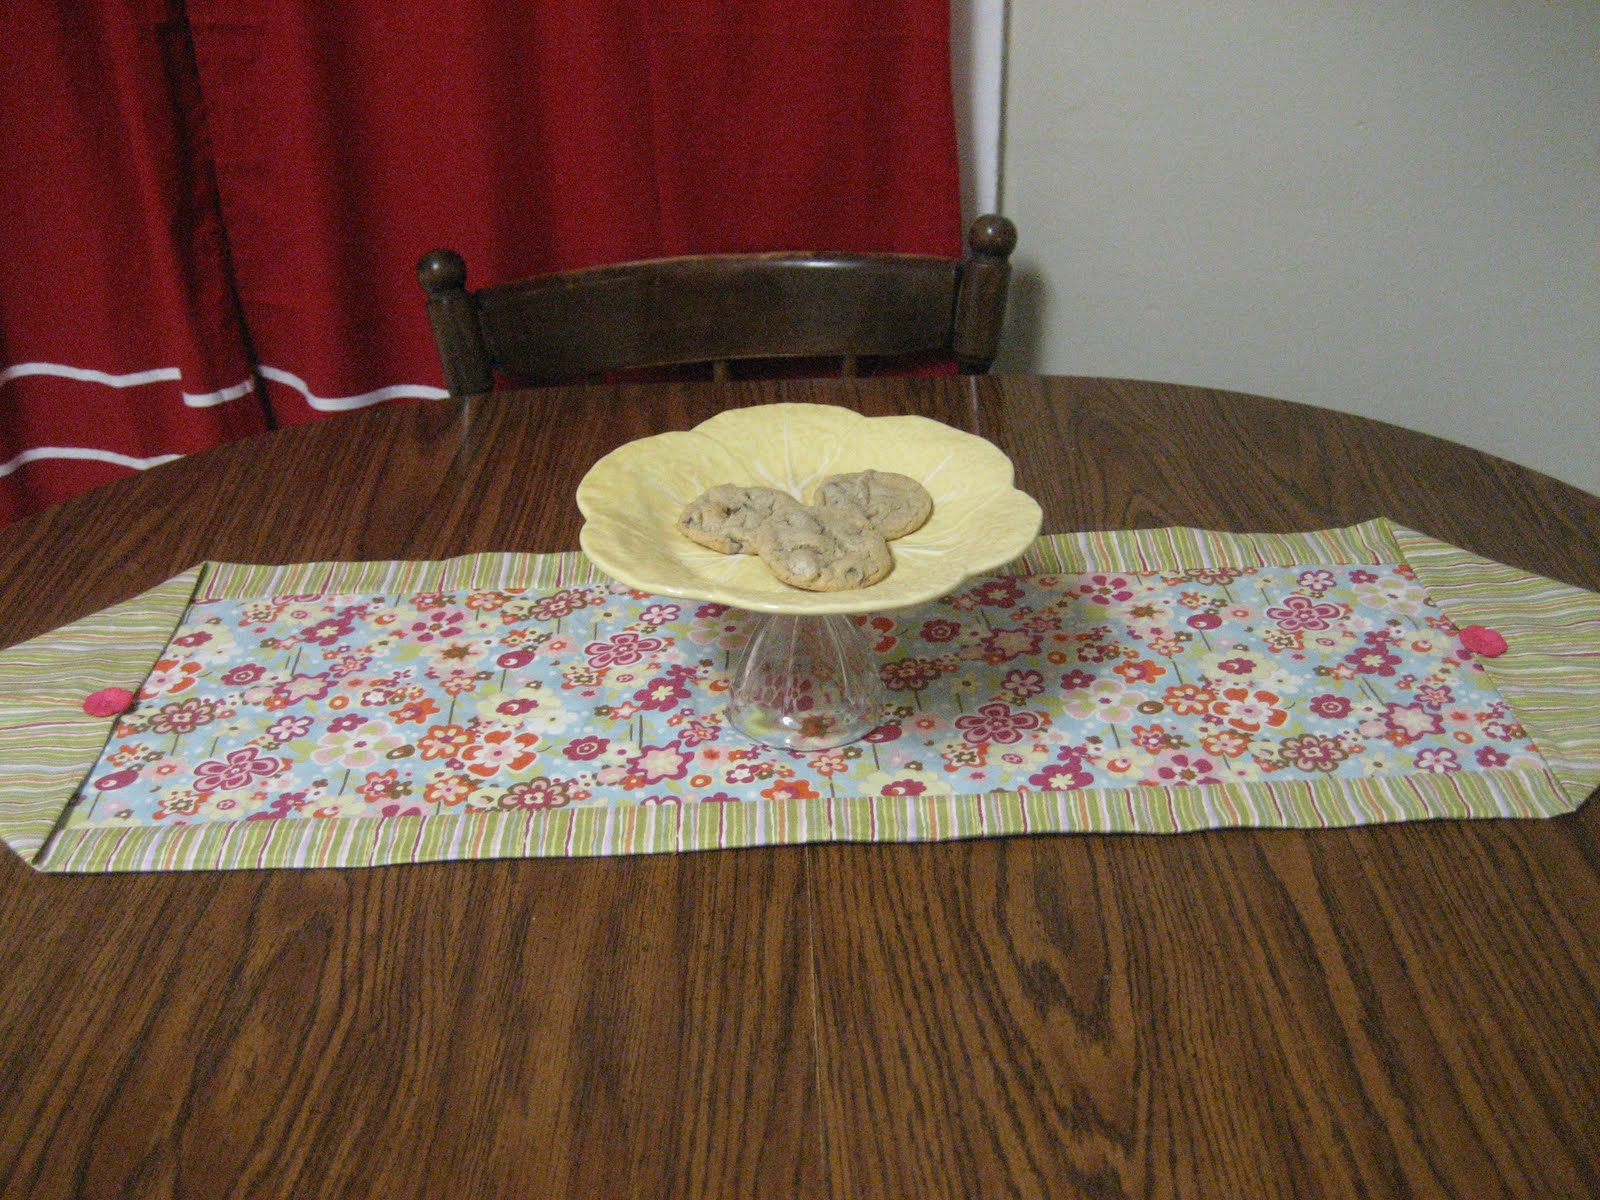 The life of a mormon housewife 10 minute table runner for 10 min table runner